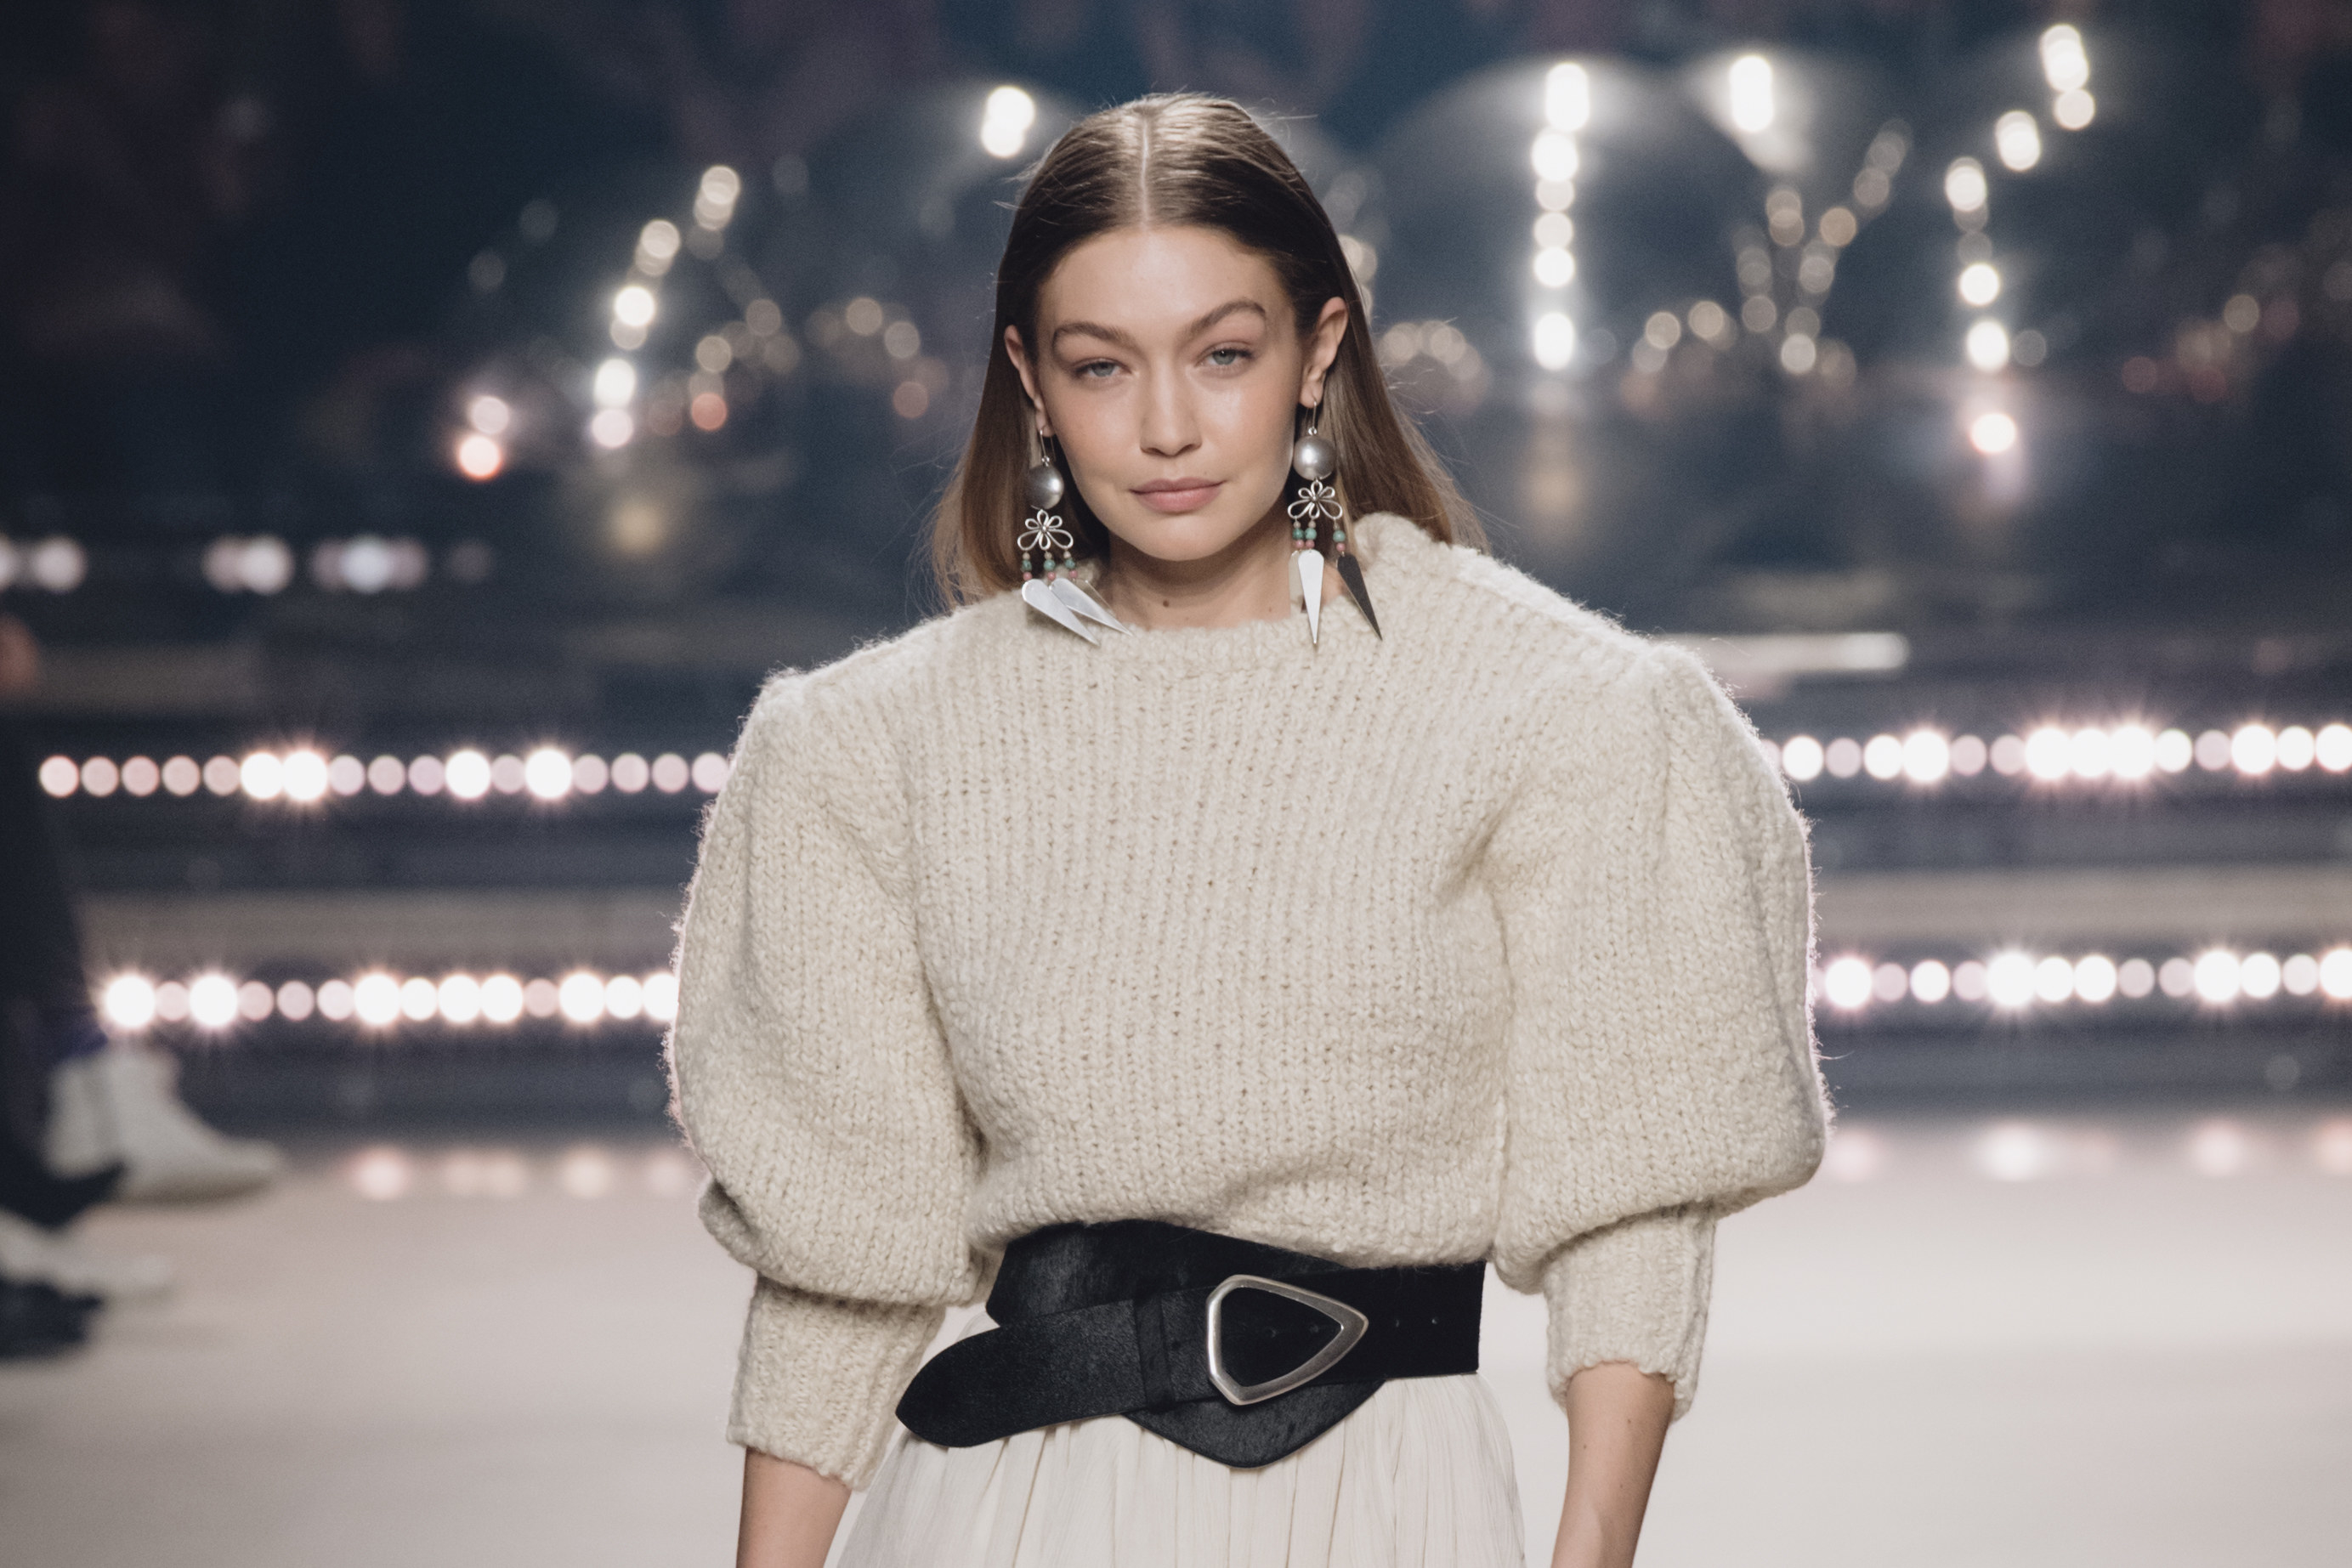 Gigi Hadid walks the runway during the Isabel Marant show as part of Paris Fashion Week Womenswear Fall/Winter 2020/2021 on February 27, 2020 in Paris, France